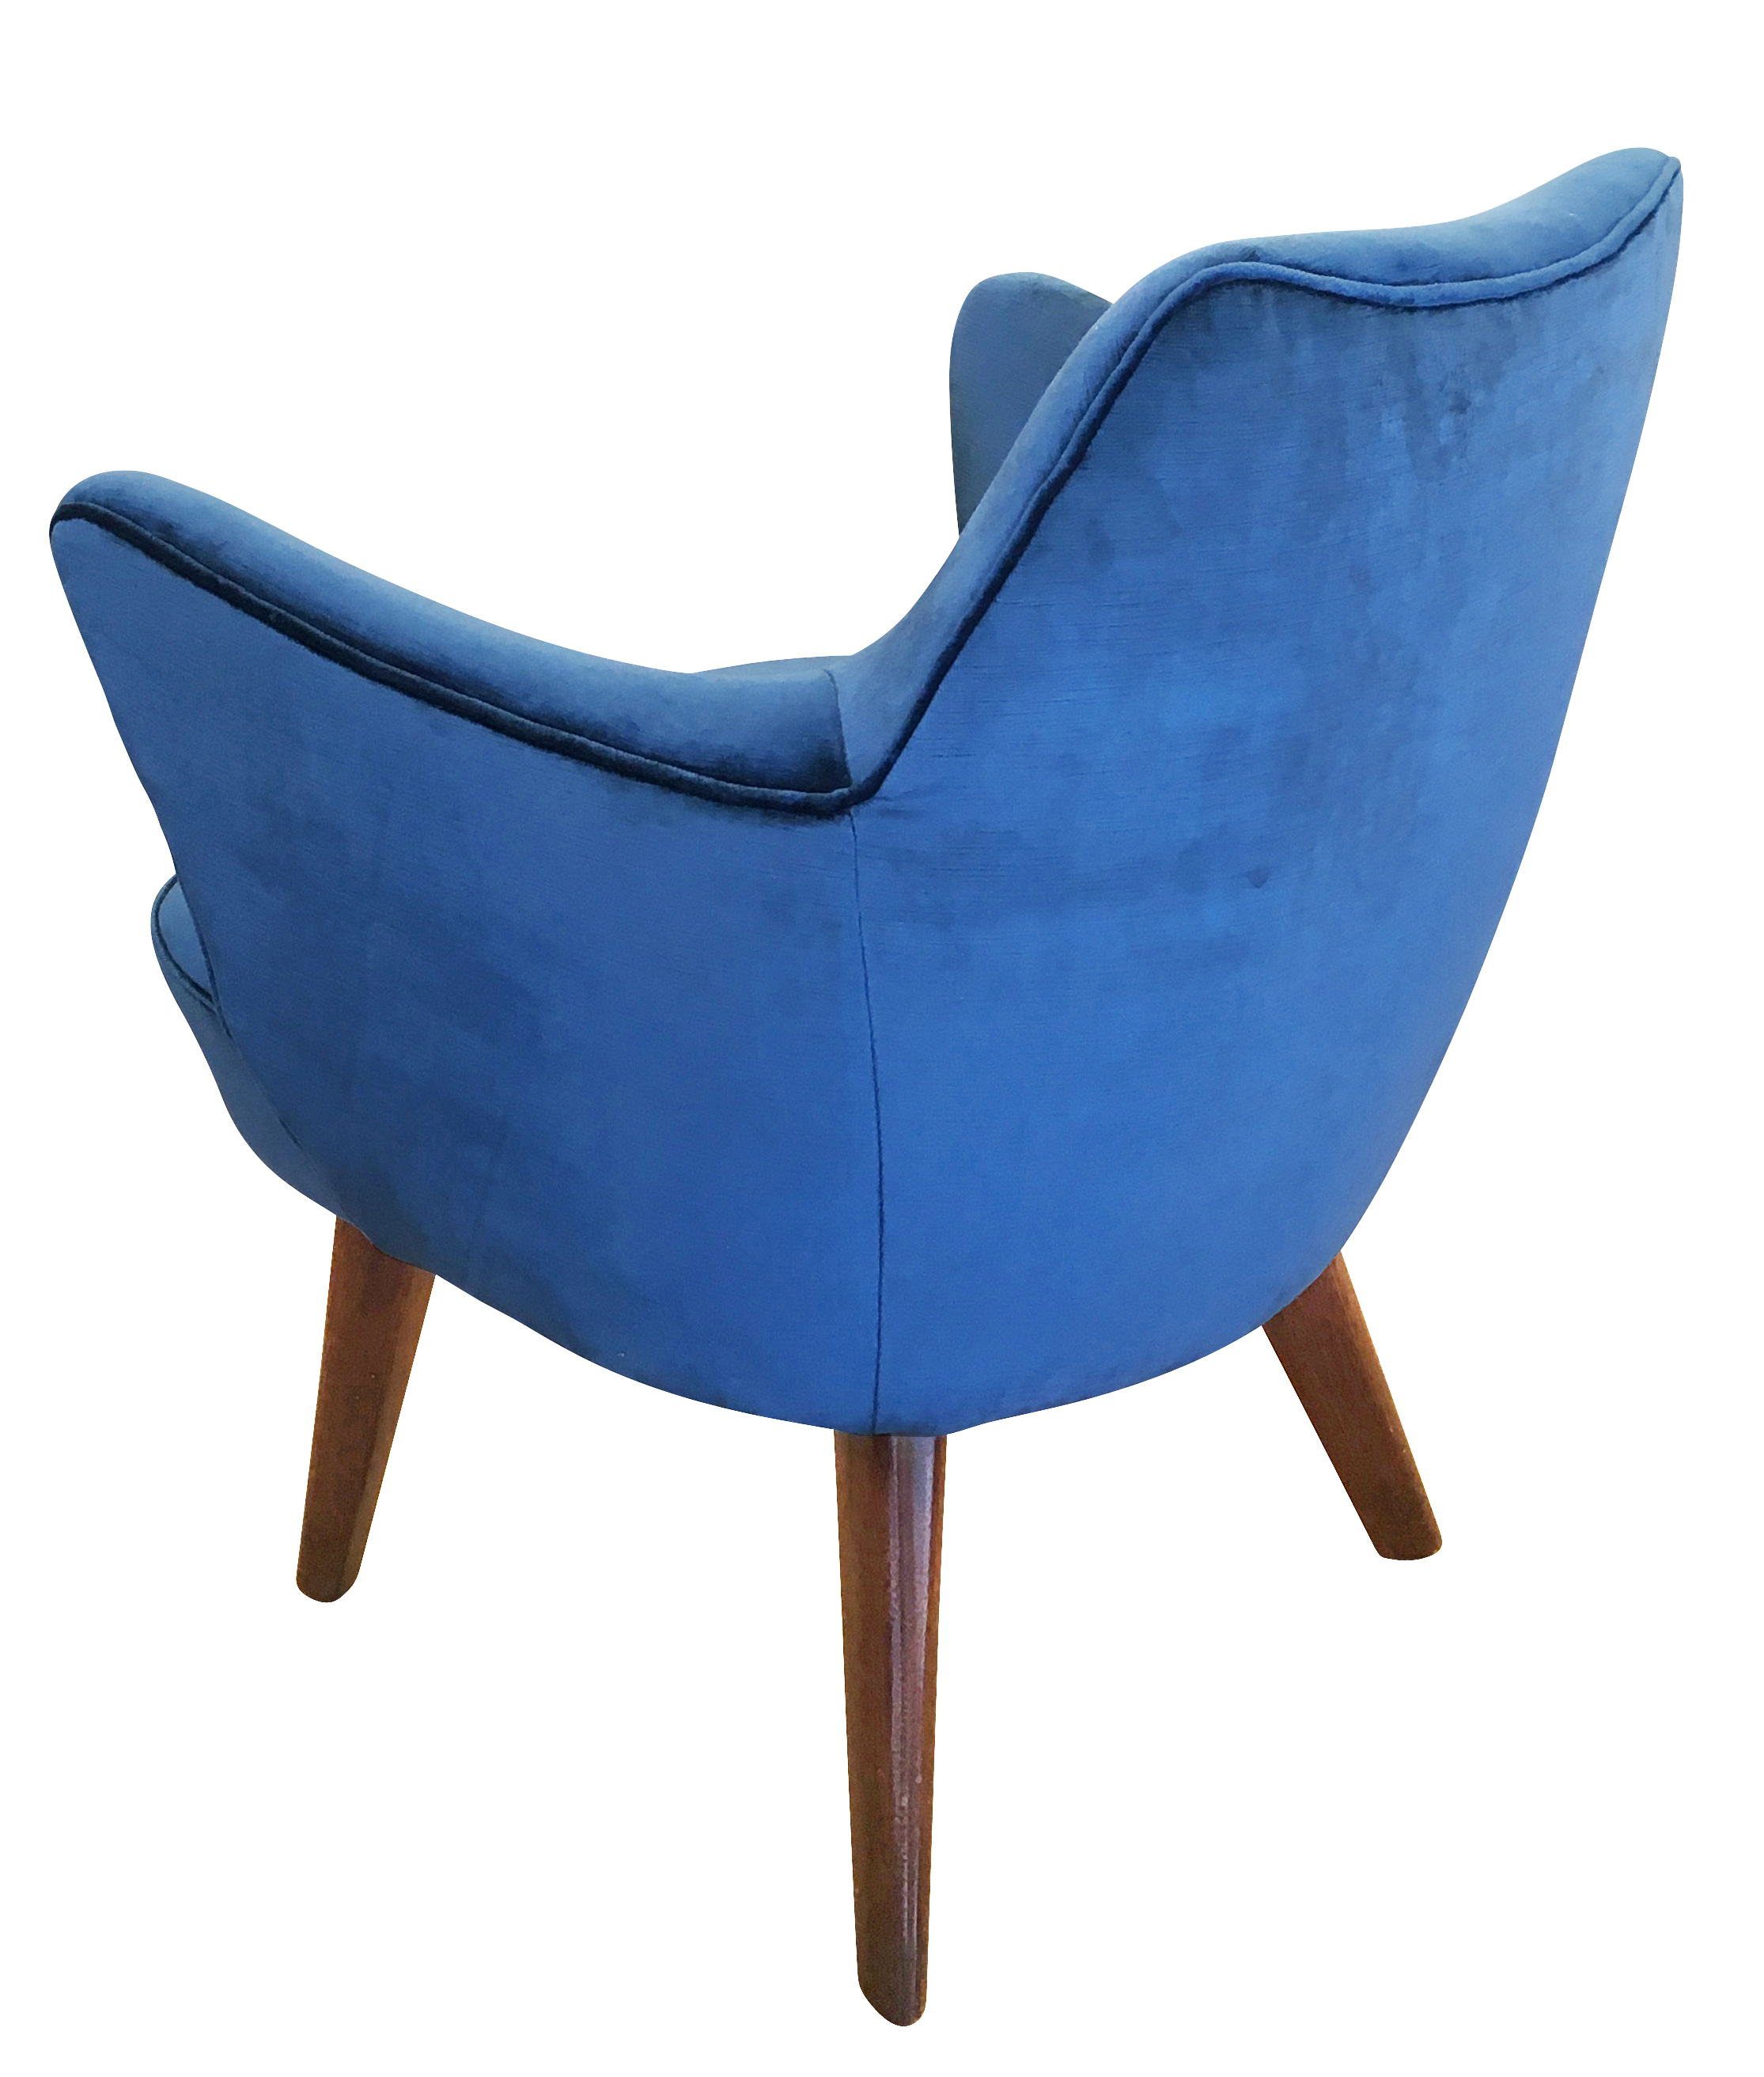 gio ponti chair back support office for cassina armchair with expertise from the archives gaspare asaro italian modern mid century furniture and lighting new york